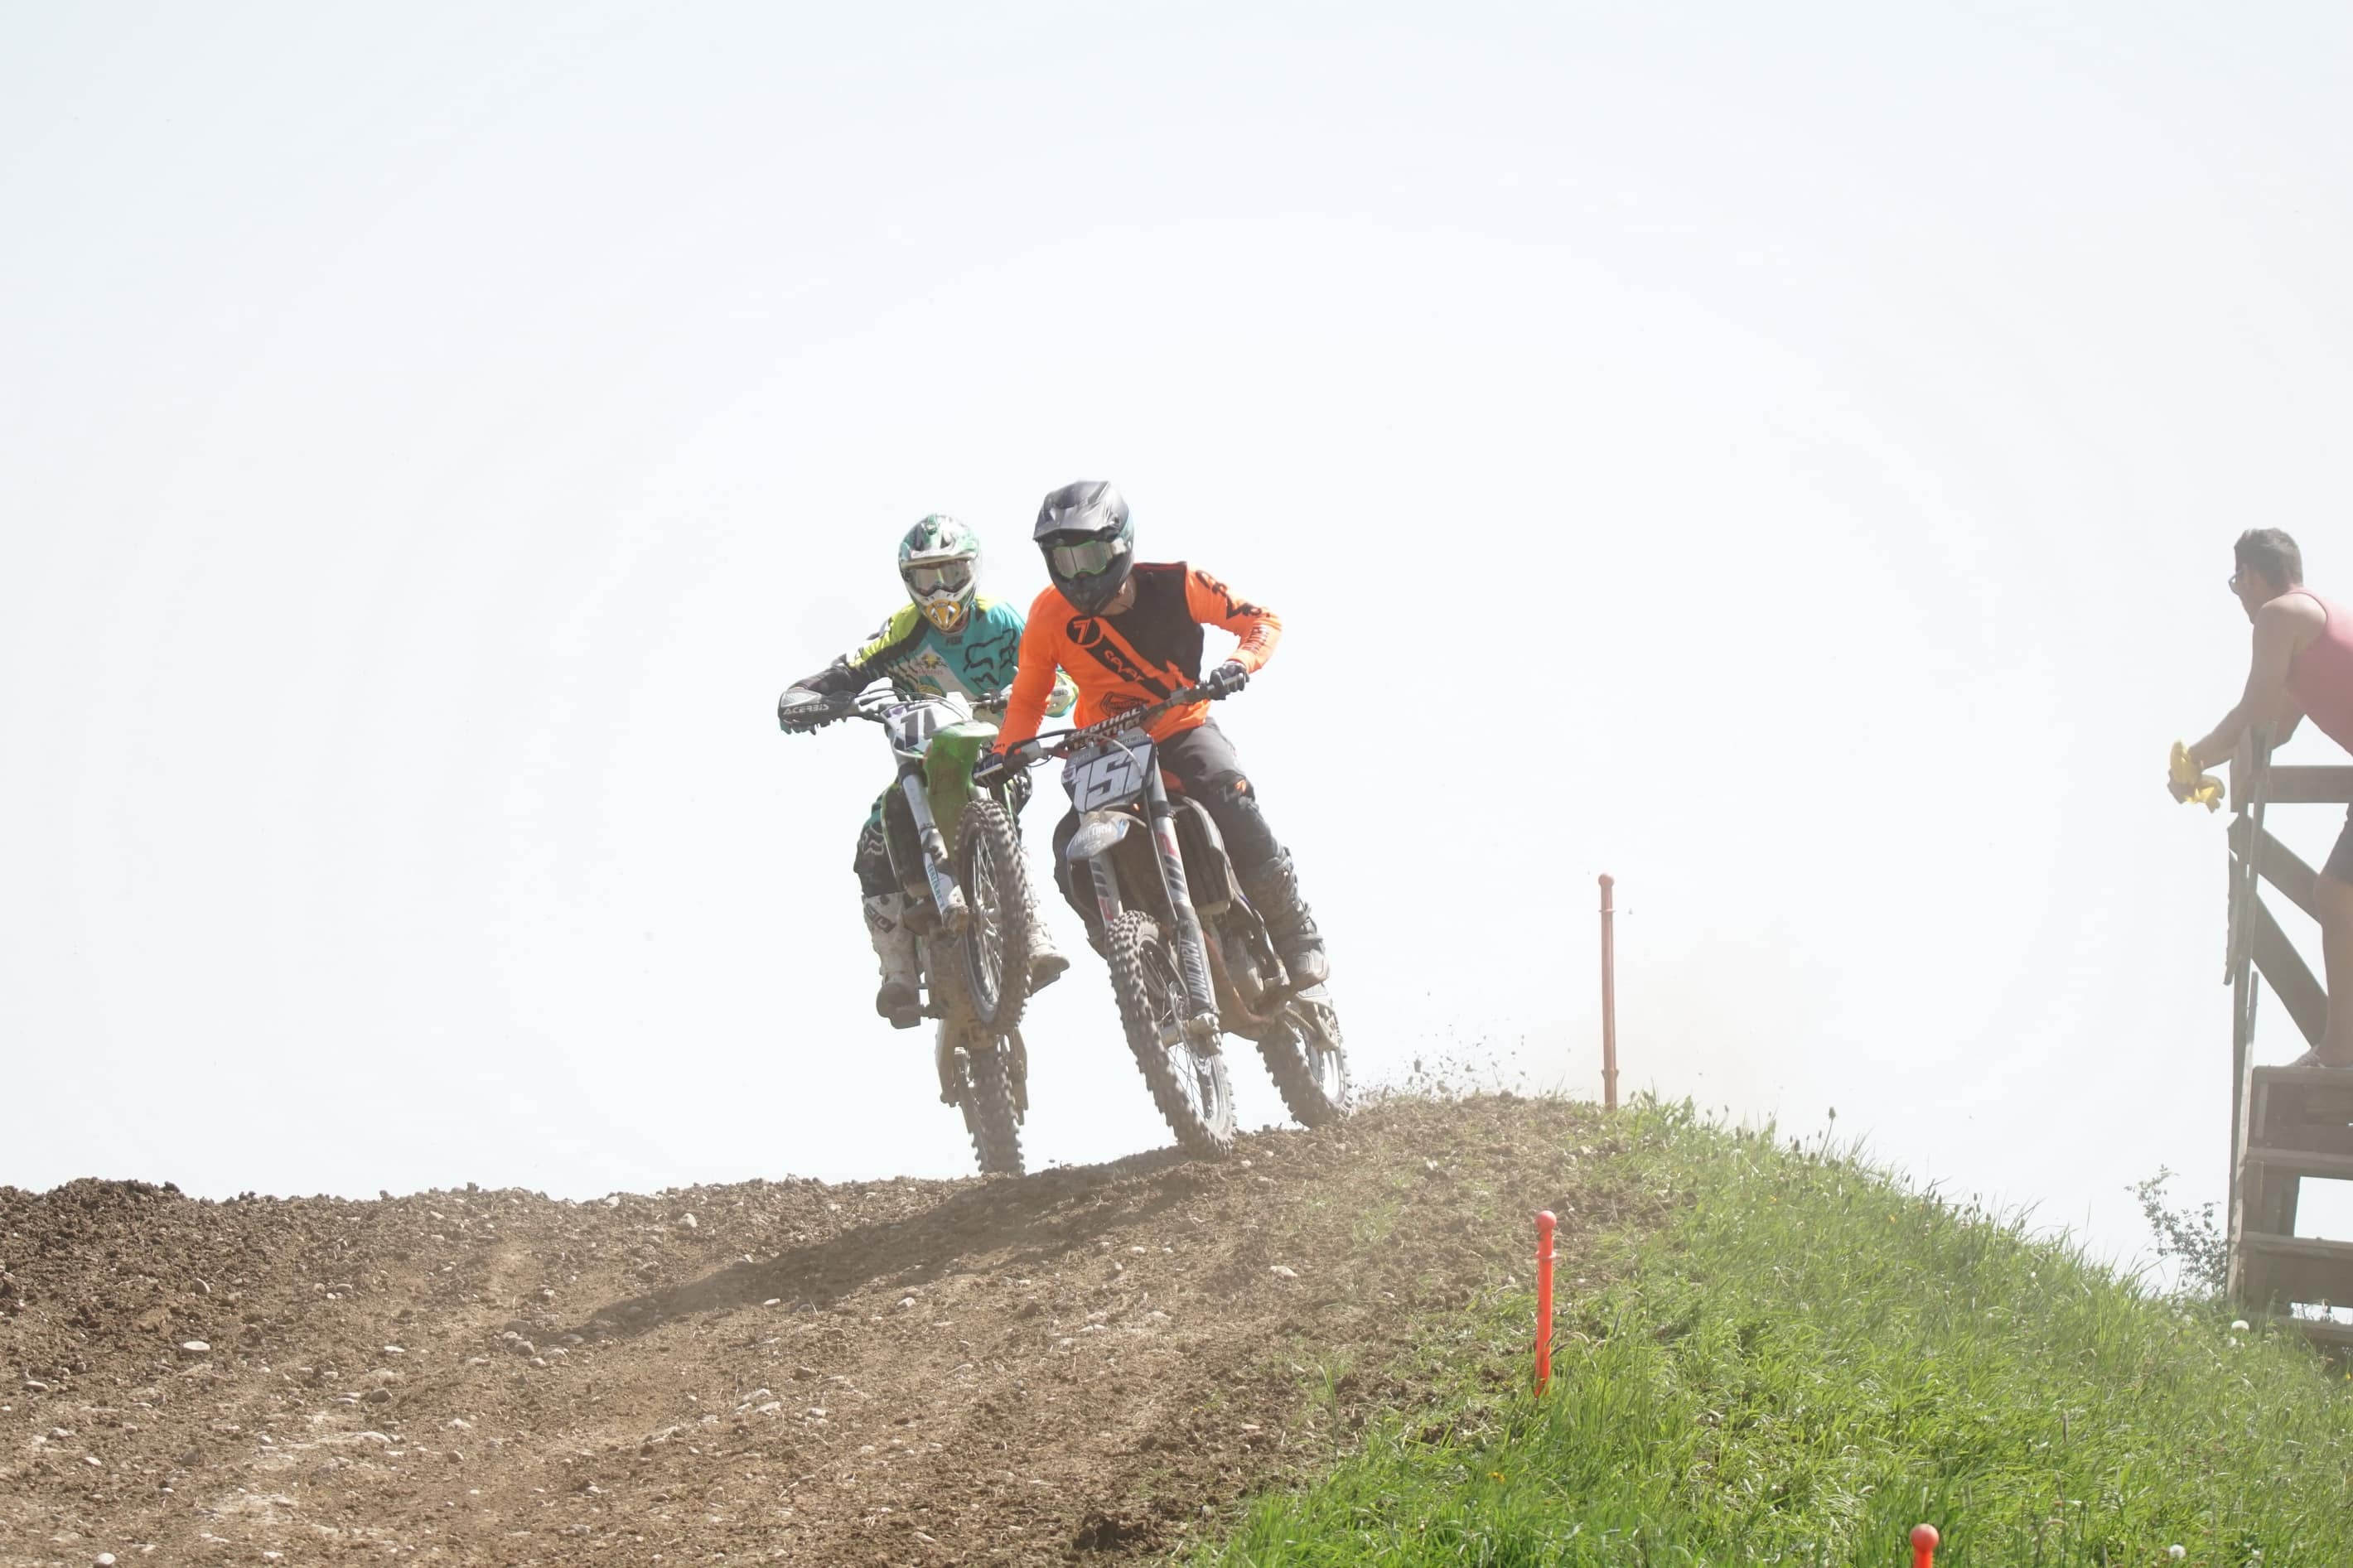 DSC 541_Moto Cross Sittendorf Teil1 am 29.04.2018